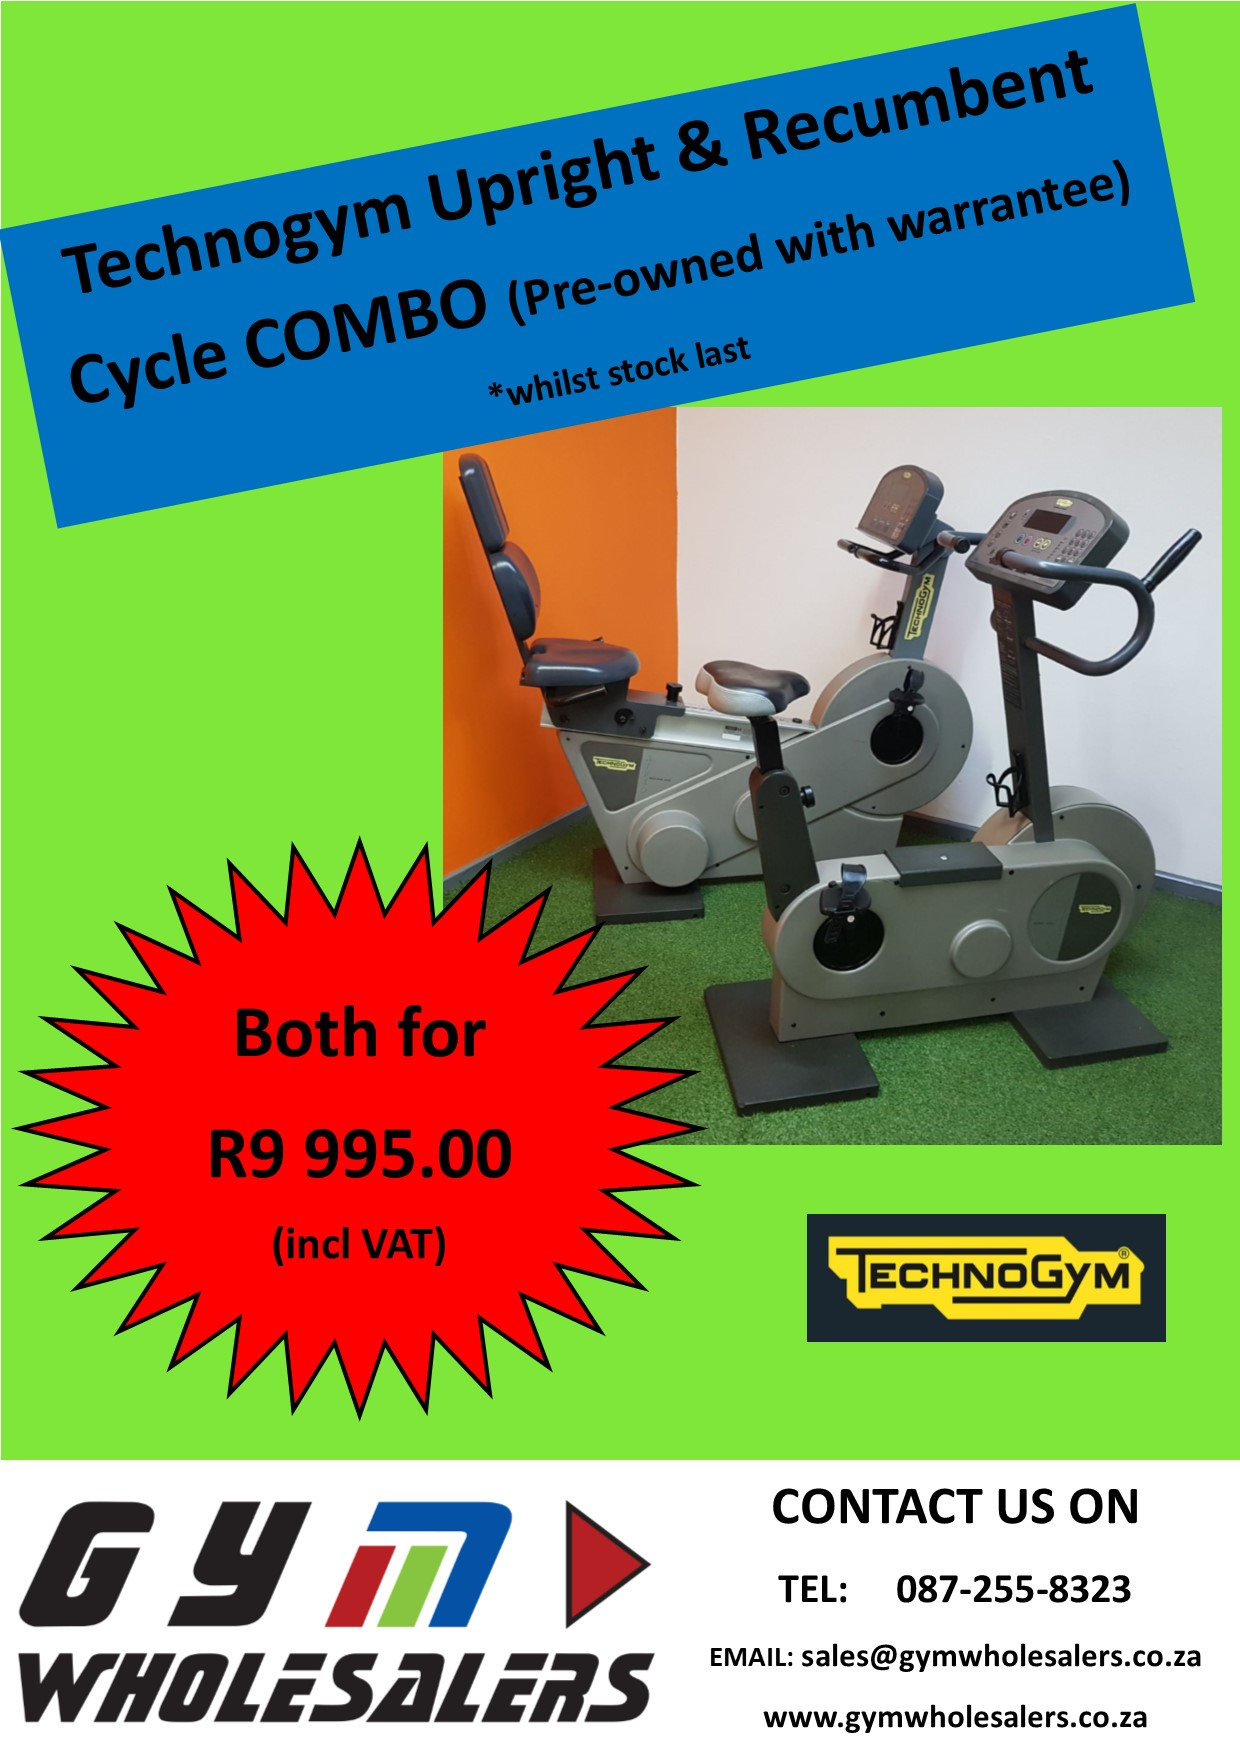 Technogym Upright & Recumbent Cycle Combo